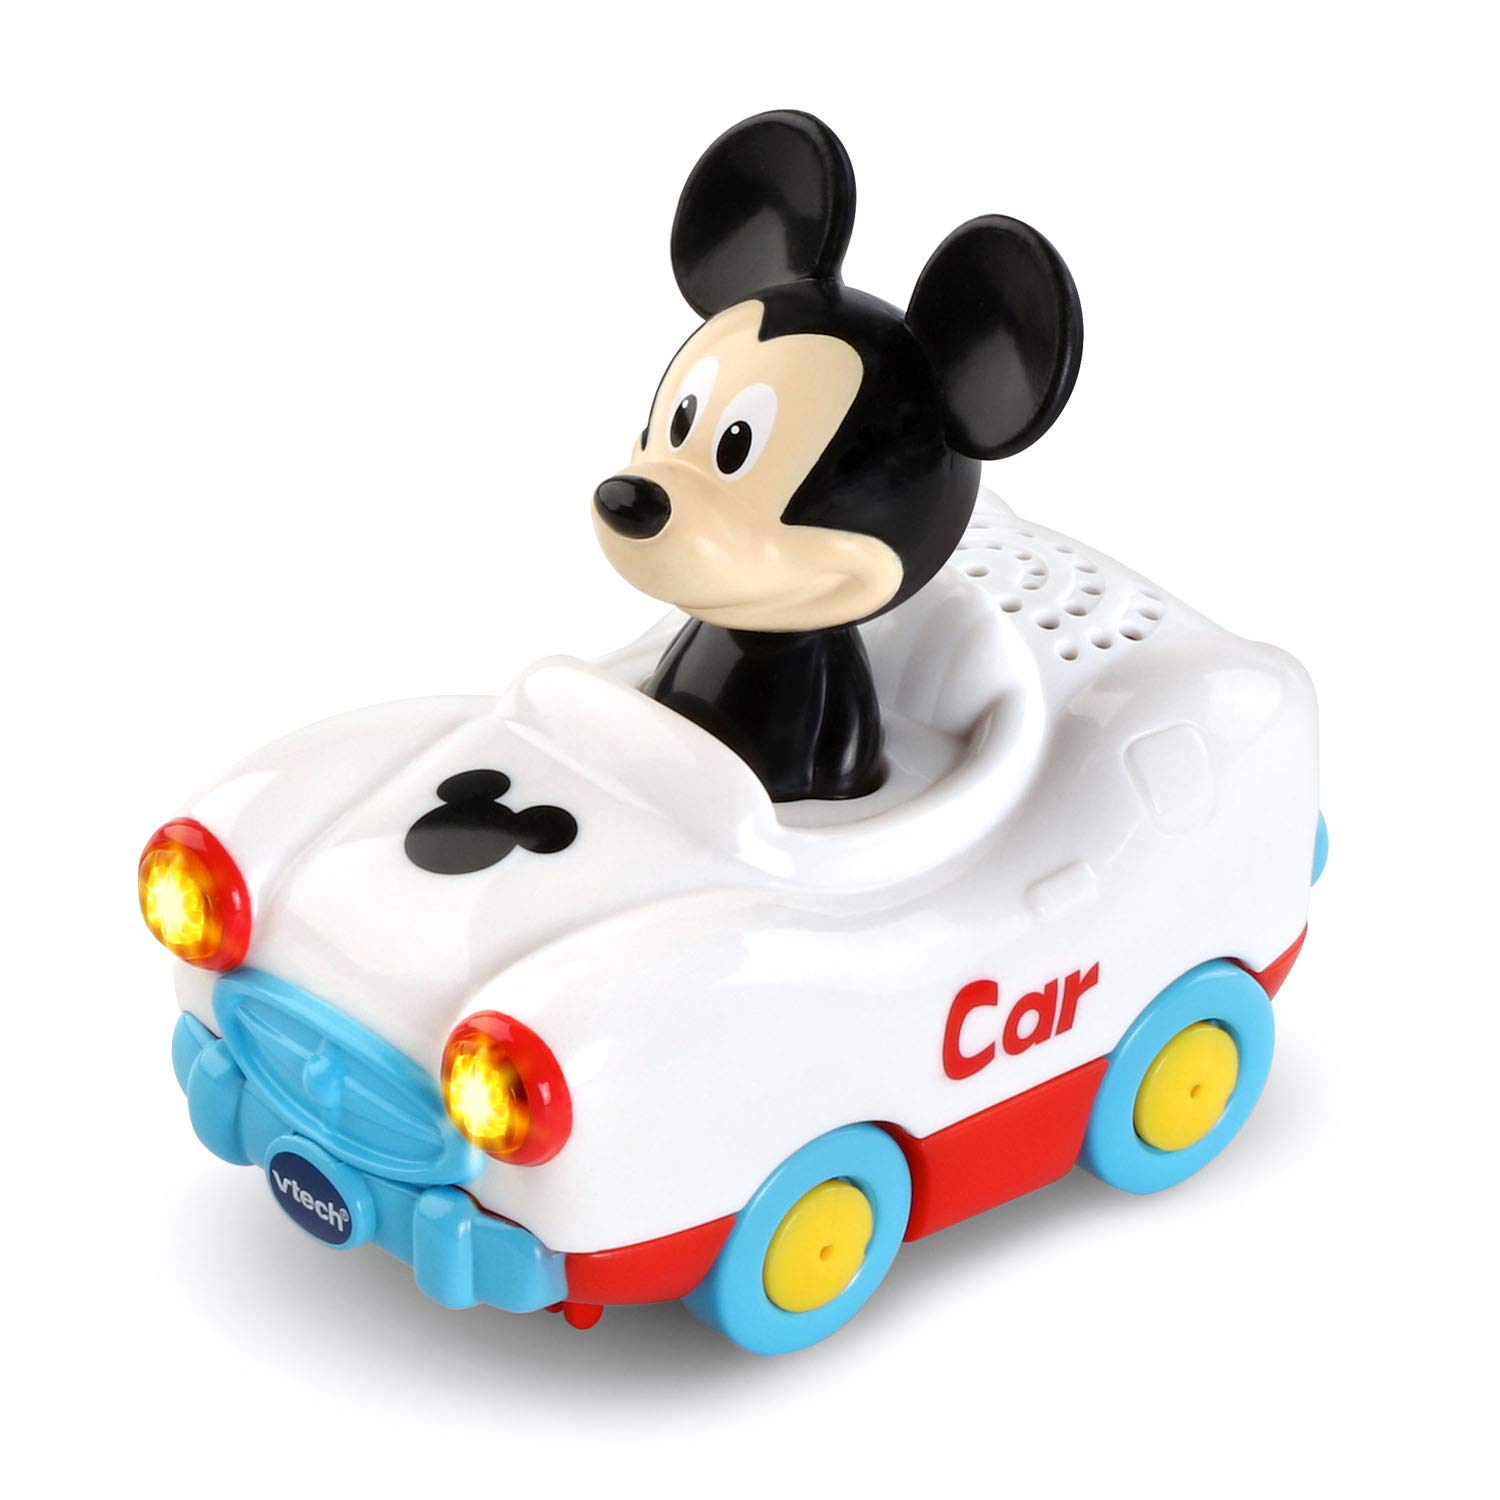 VTech Go! Go! Smart Wheels Mickey Mouse Magical Wonderland, Multicolor by VTech (Image #3)